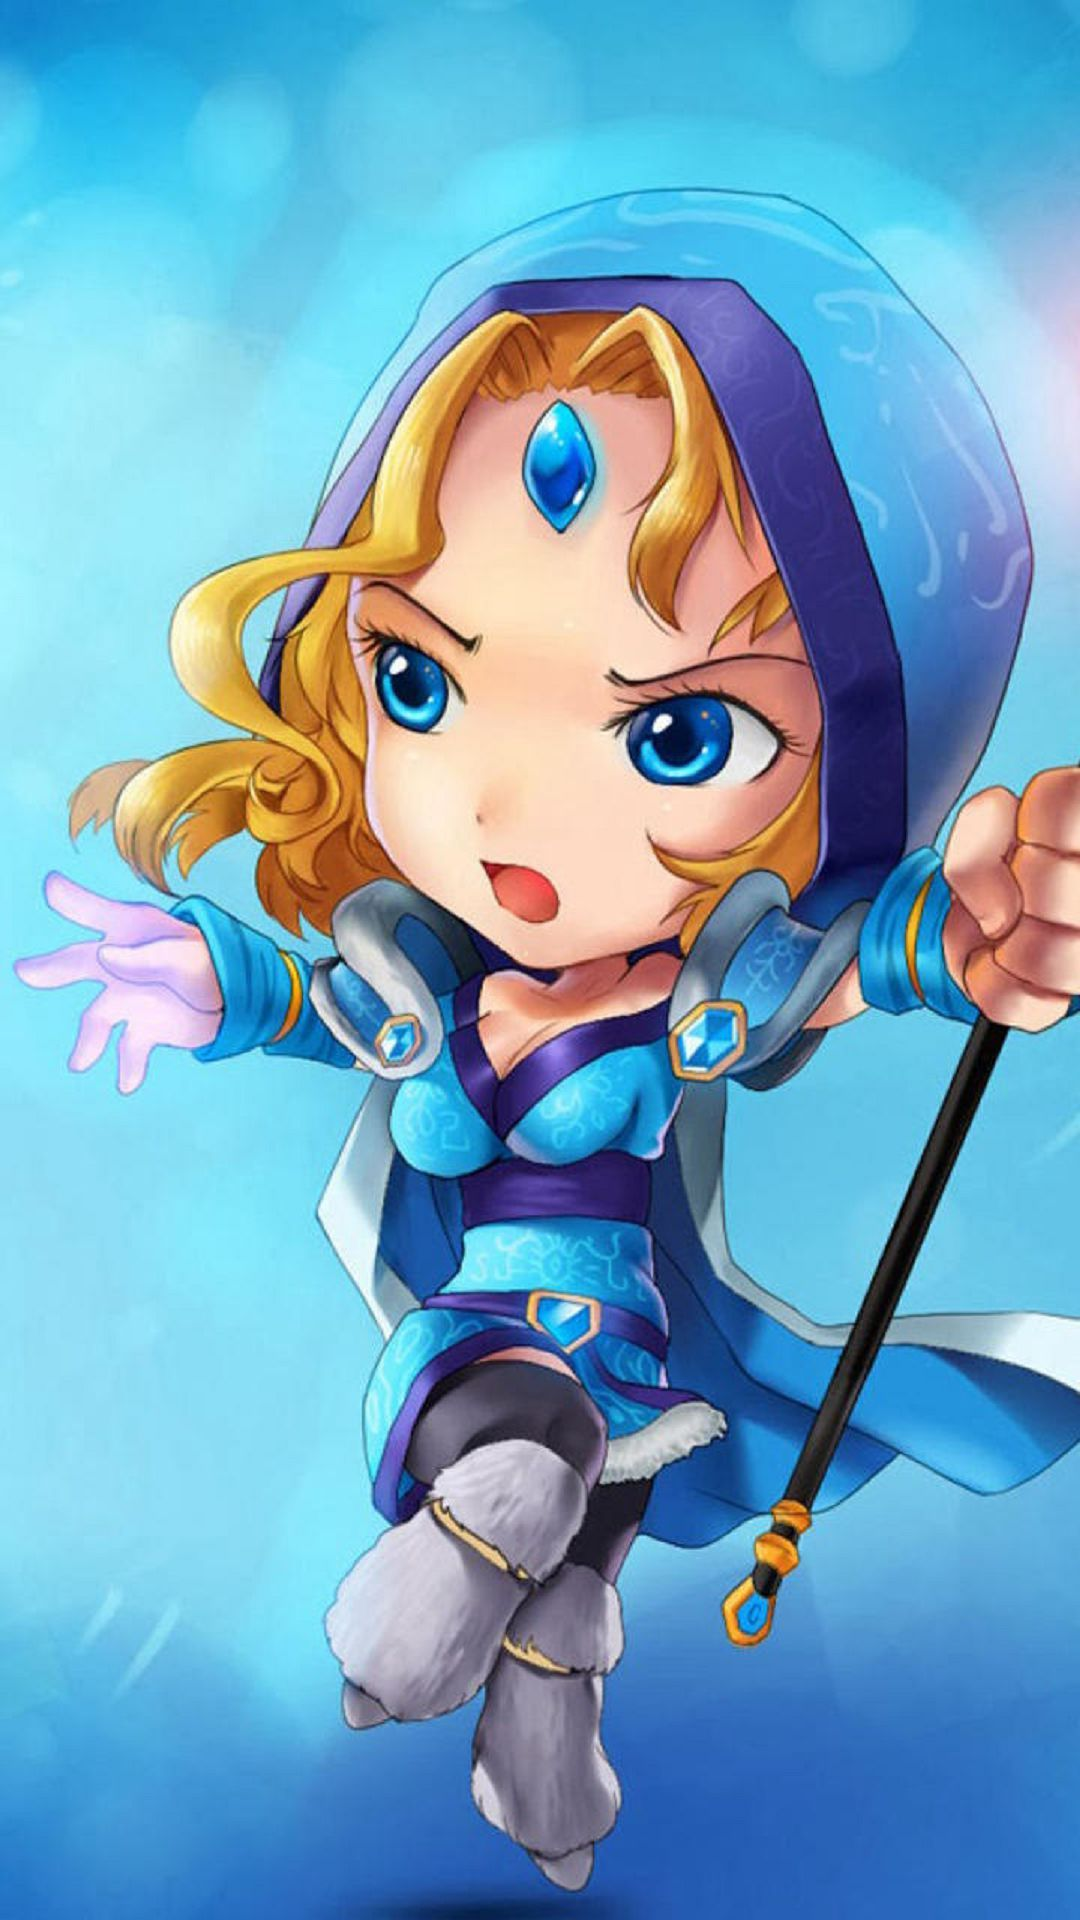 Dota 2 Crystal Maiden Daily Android Wallpapers Pinterest Dota